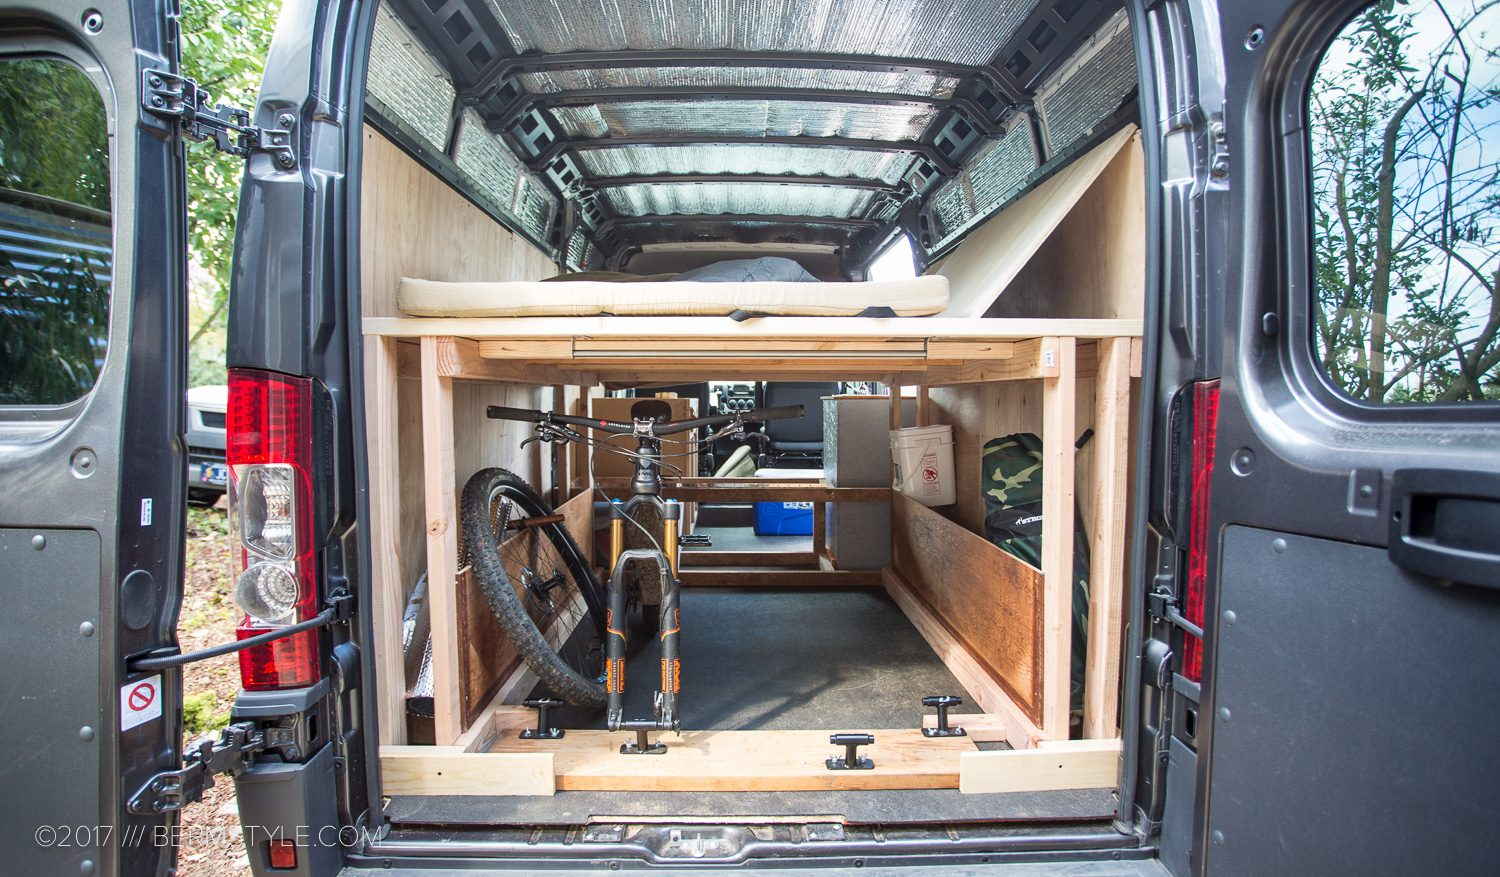 Promaster Rv Build >> Bermstyle – Banked turns are more fun